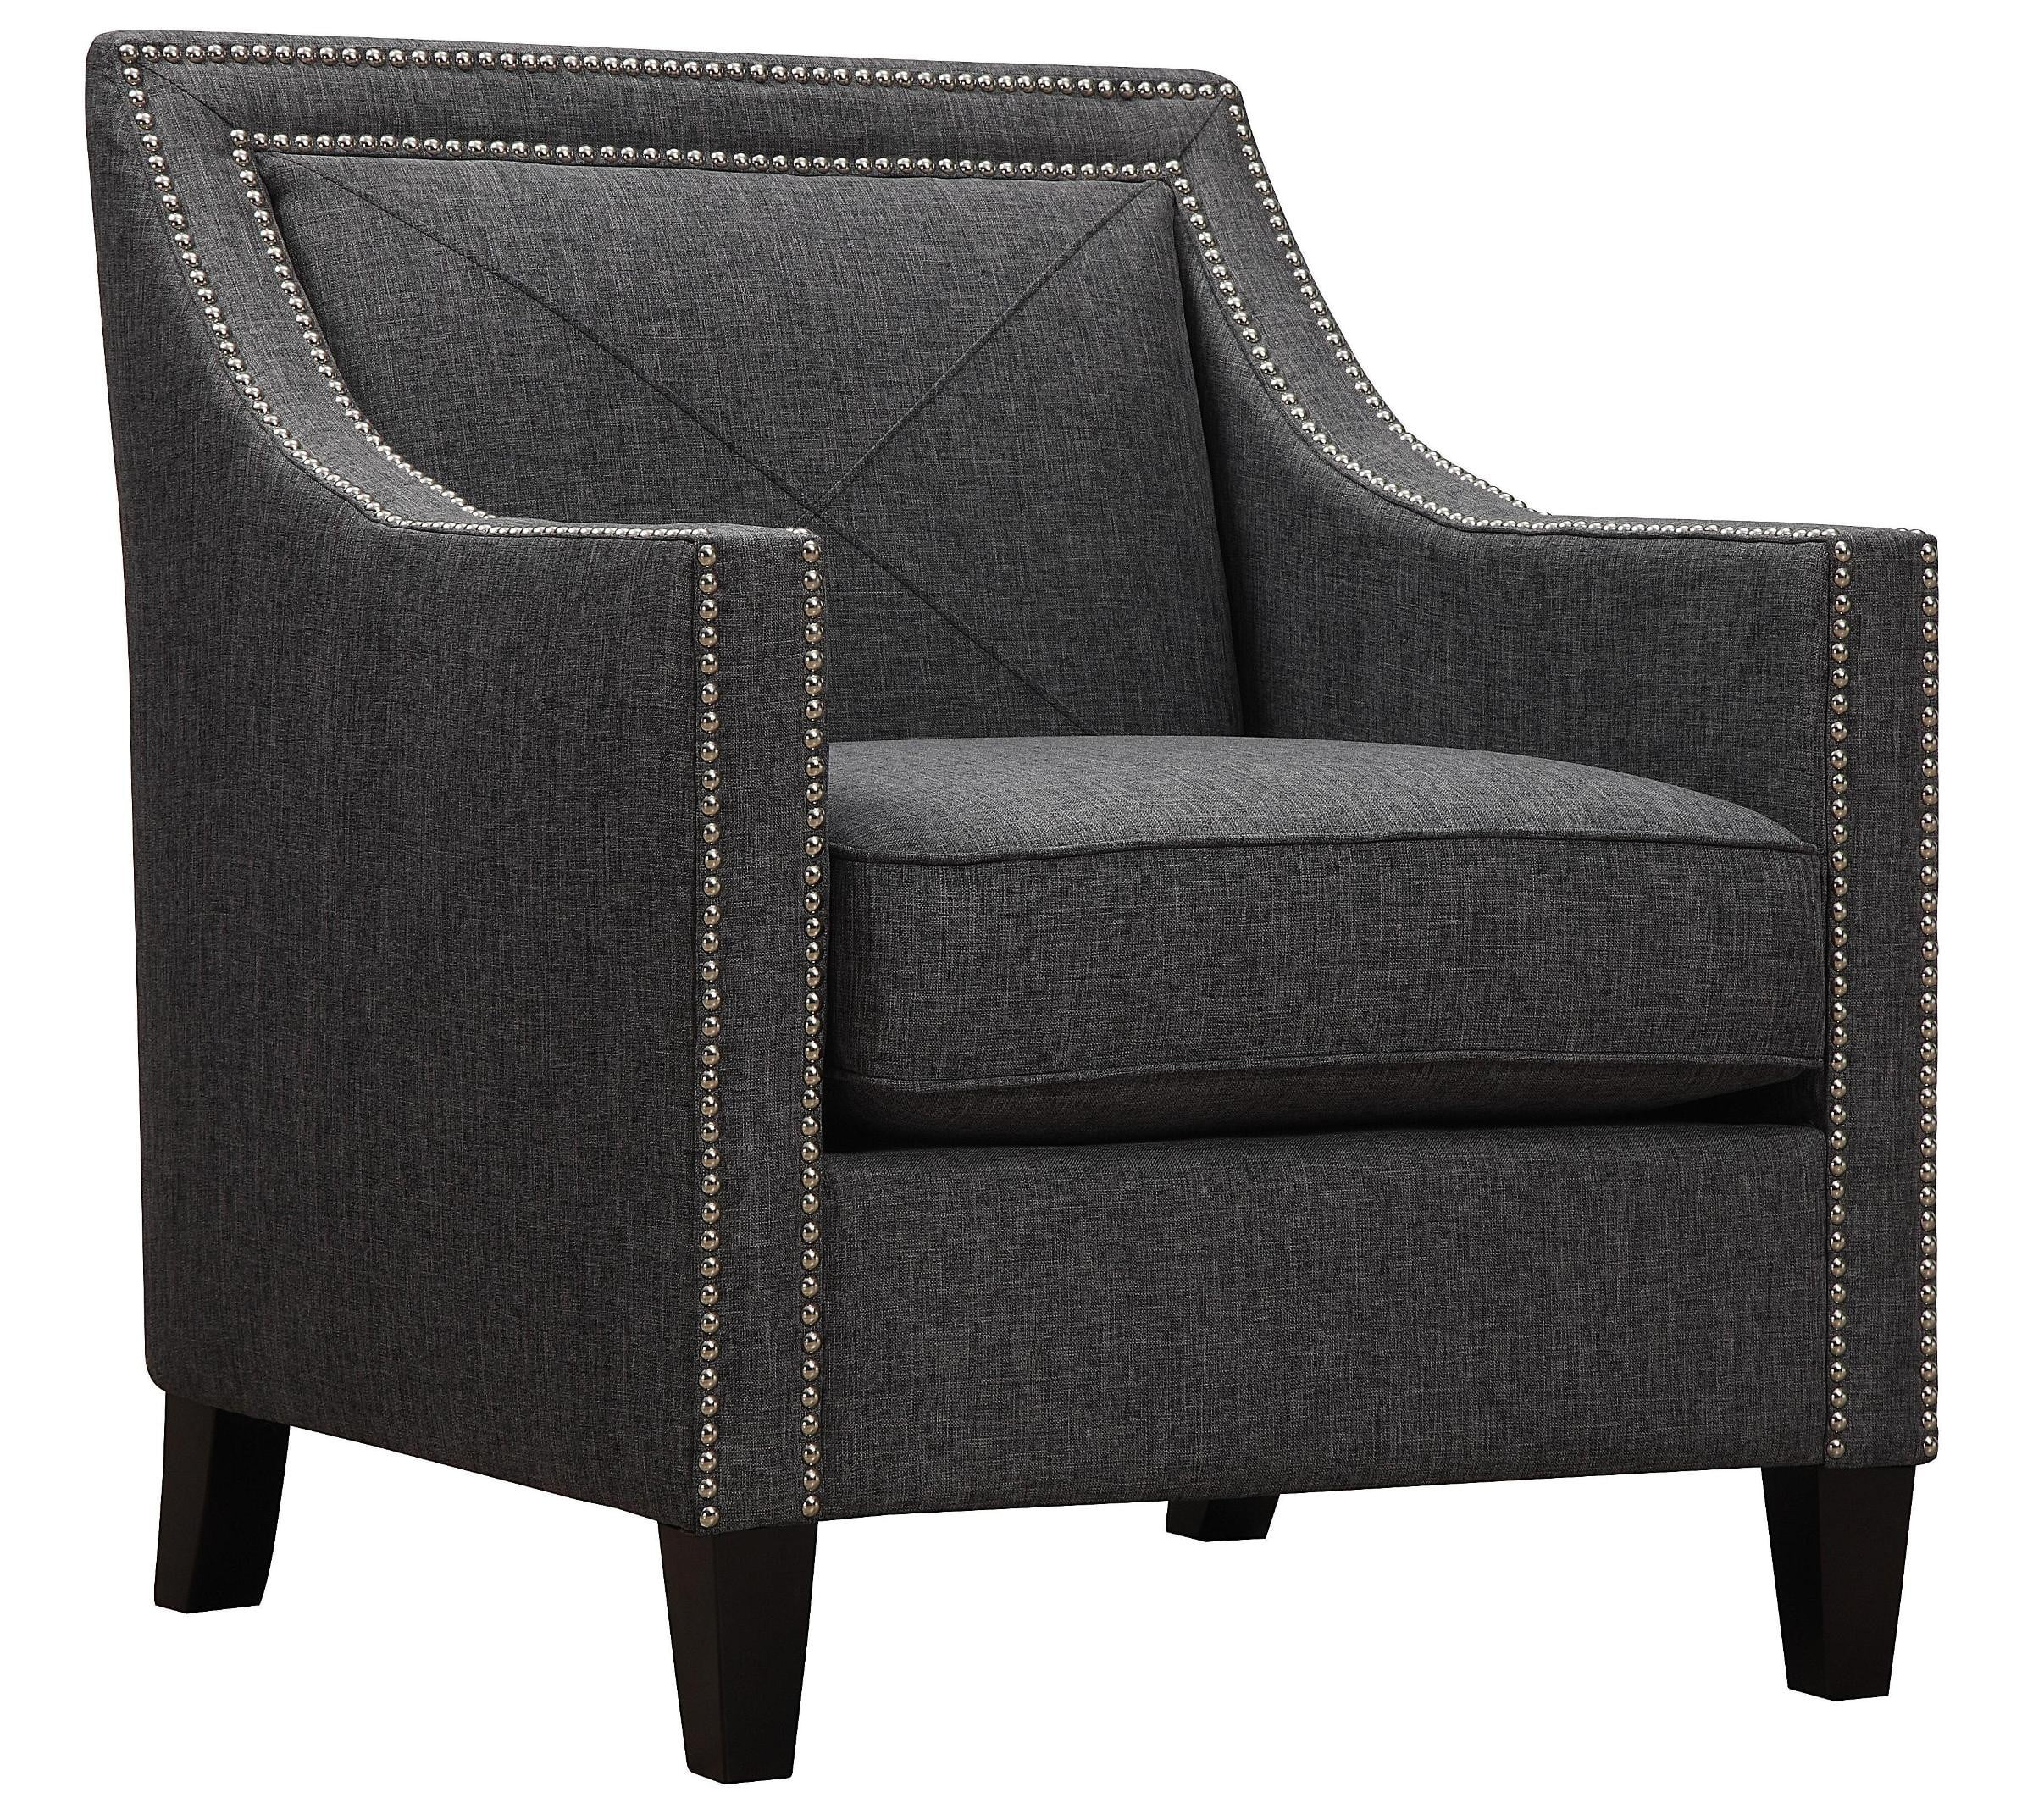 Asheville Dark Grey Linen Chair From Tov A51